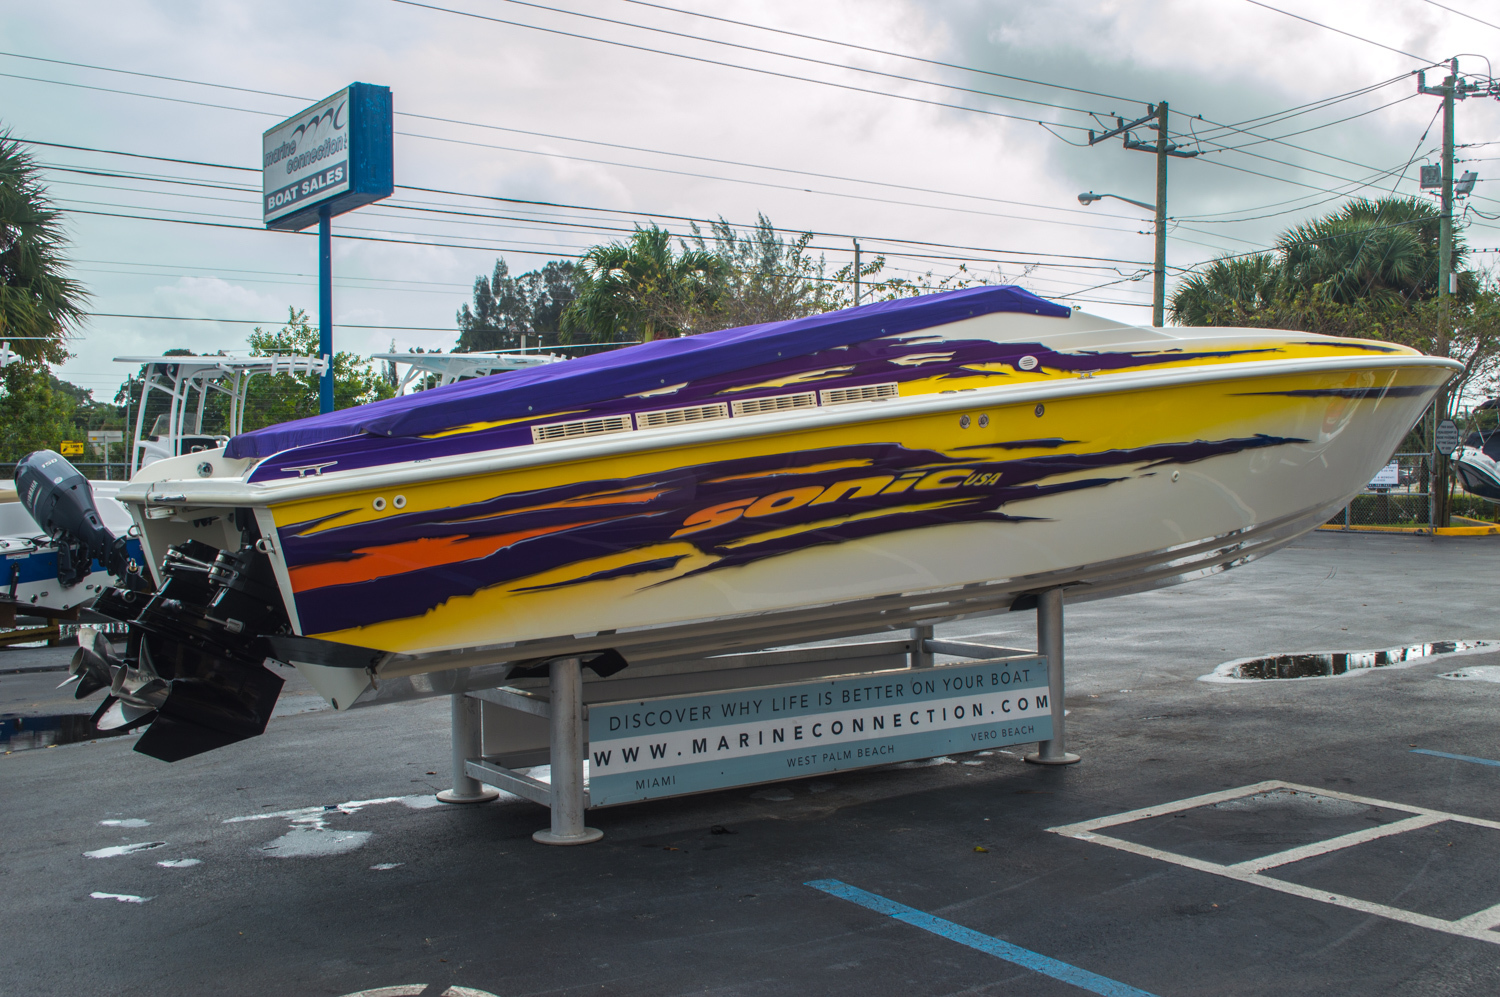 Thumbnail 11 for Used 2001 Sonic 31 SS boat for sale in West Palm Beach, FL